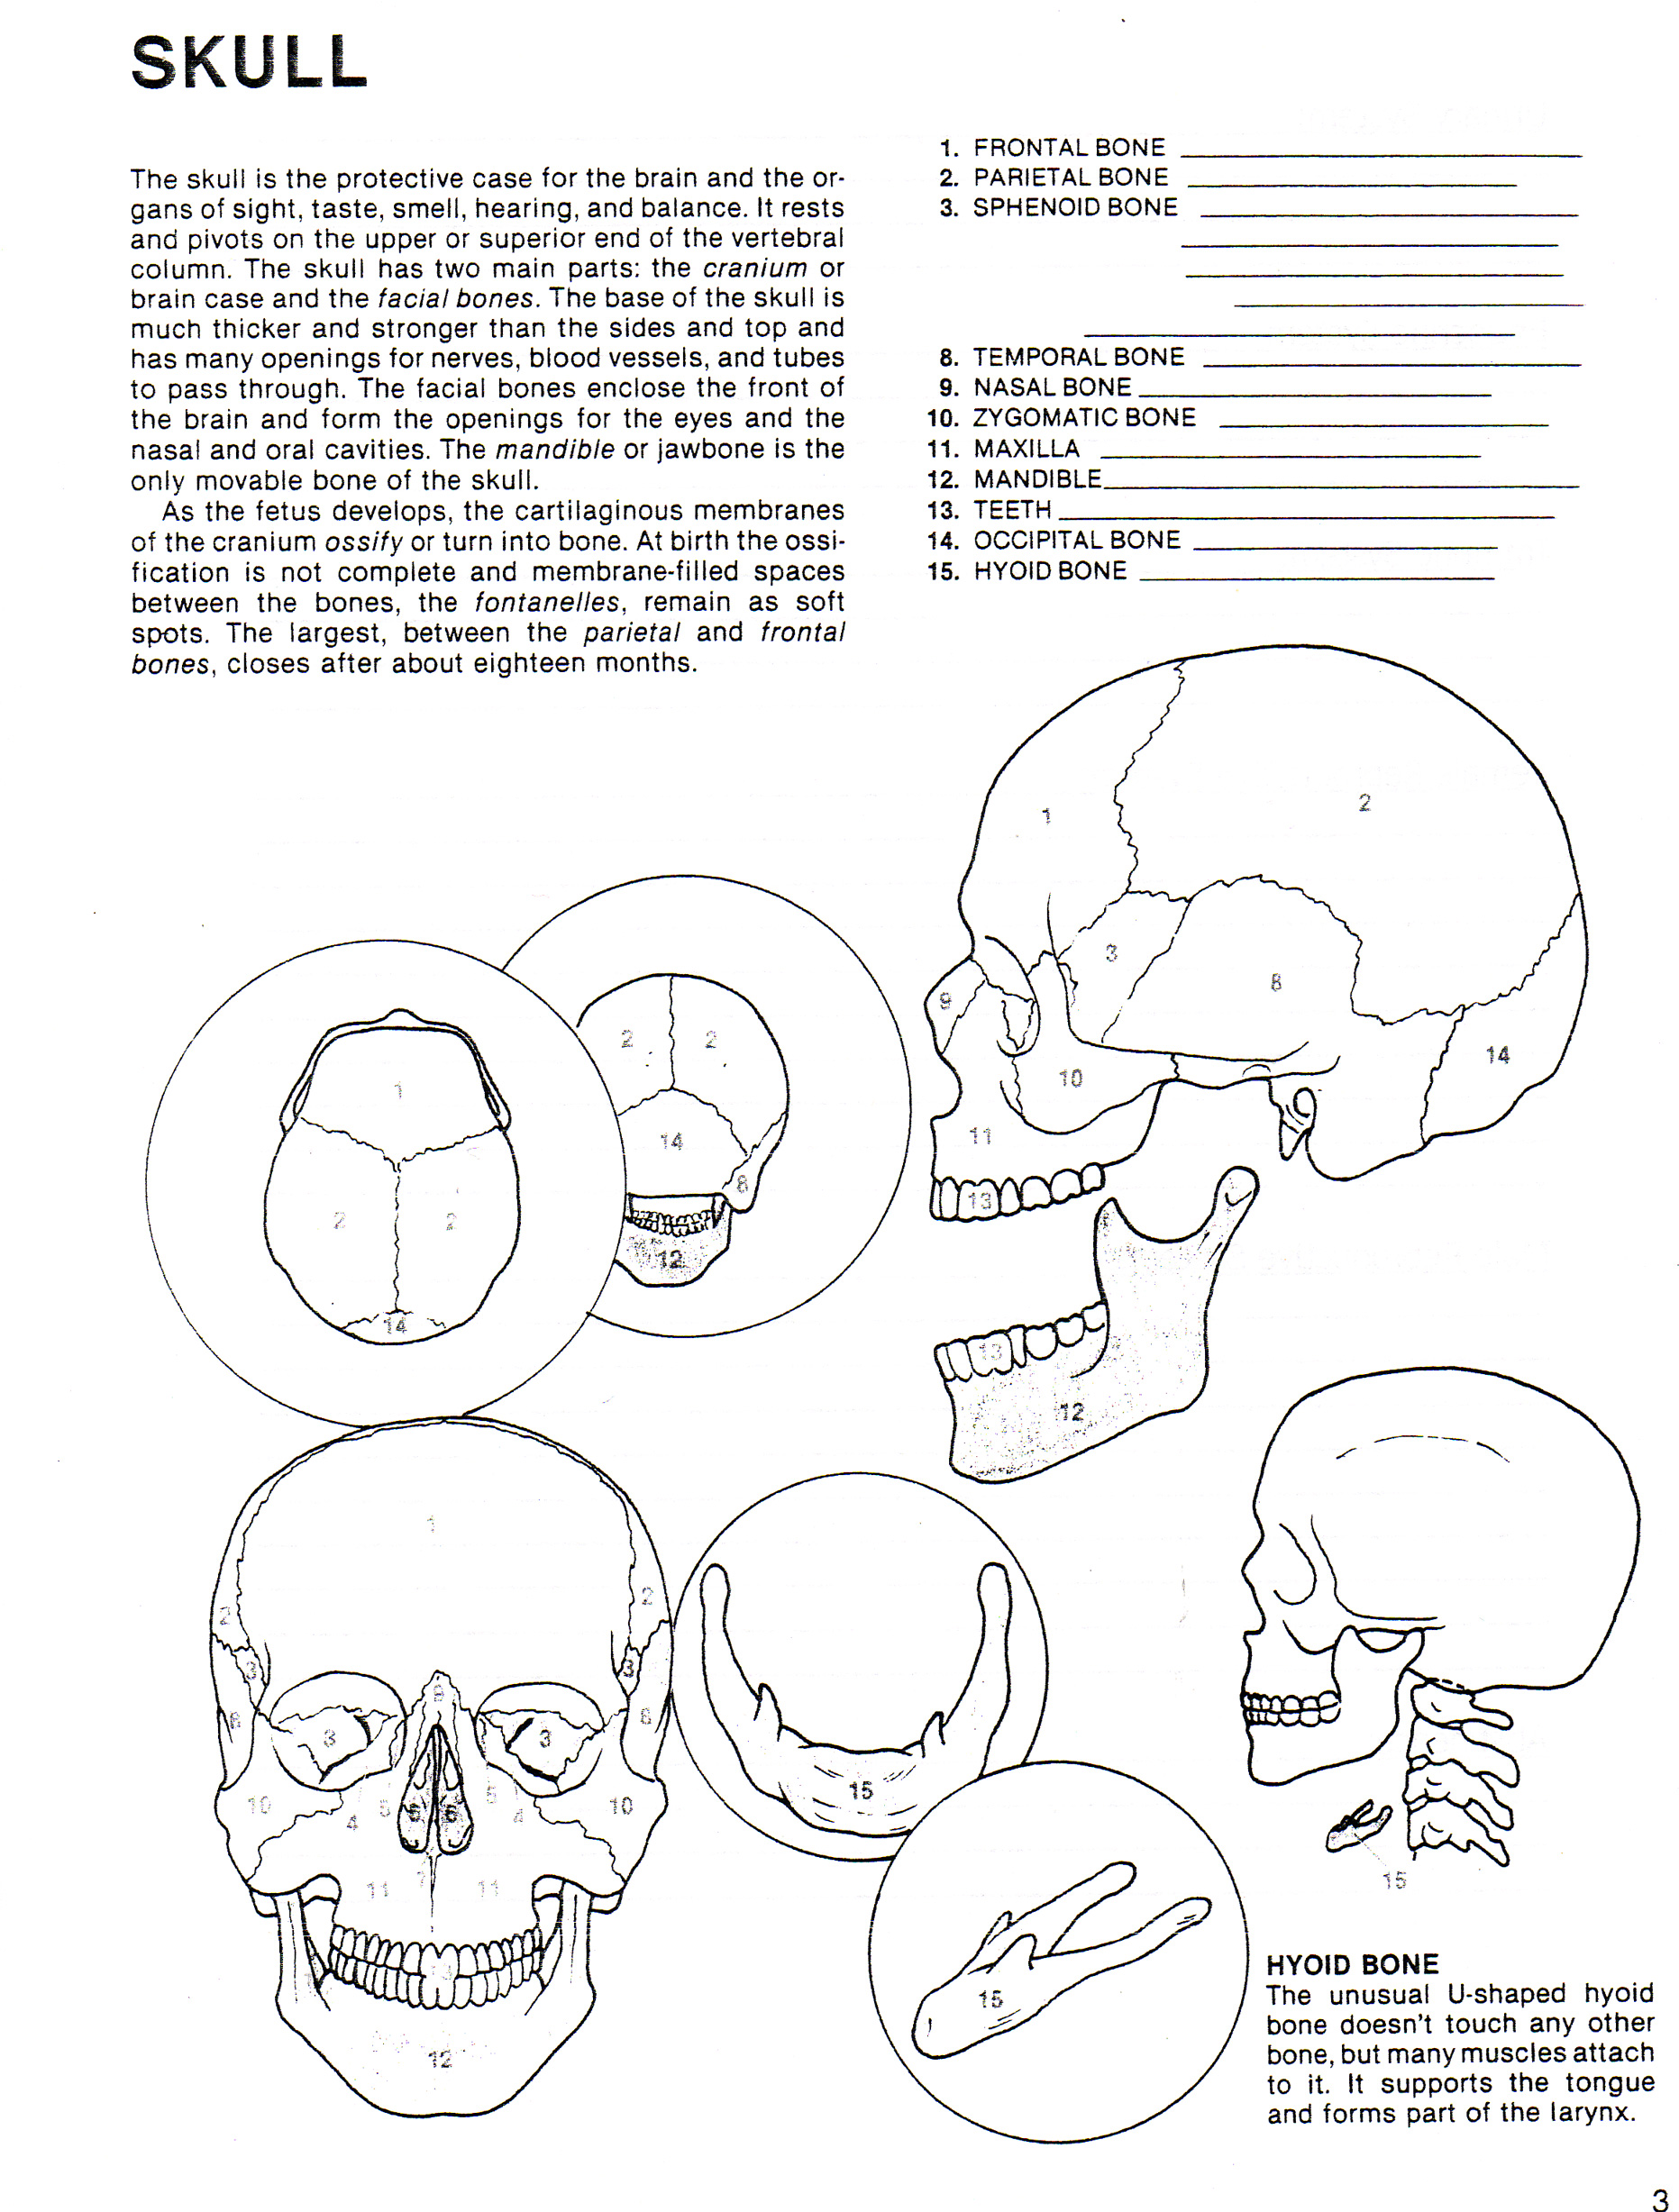 Skull Anatomy Worksheets http://southhealth.weebly.com/human-growth--development.html